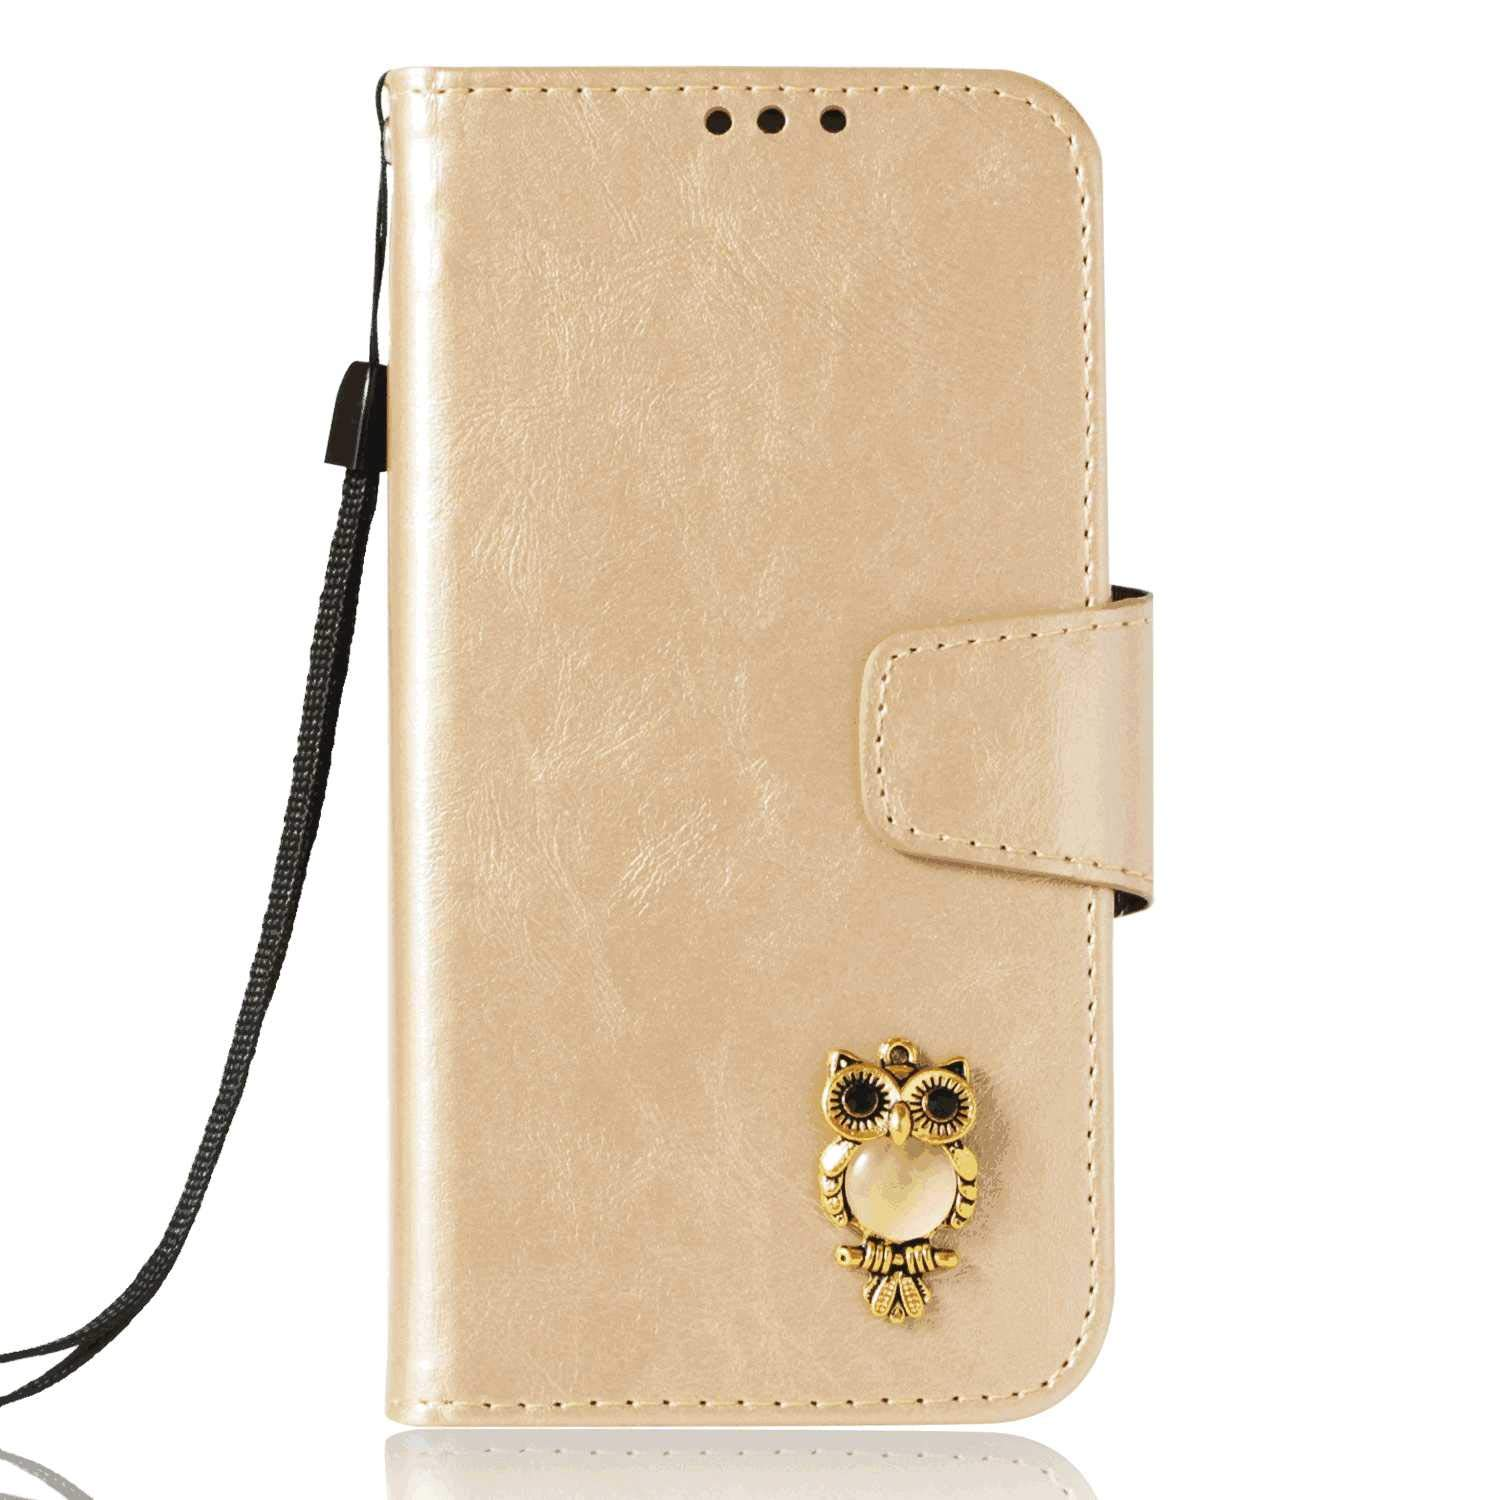 Cover for Leather Card Holders Wallet Cover Premium Business Kickstand Flip Cover Samsung Galaxy Note8 Flip Case